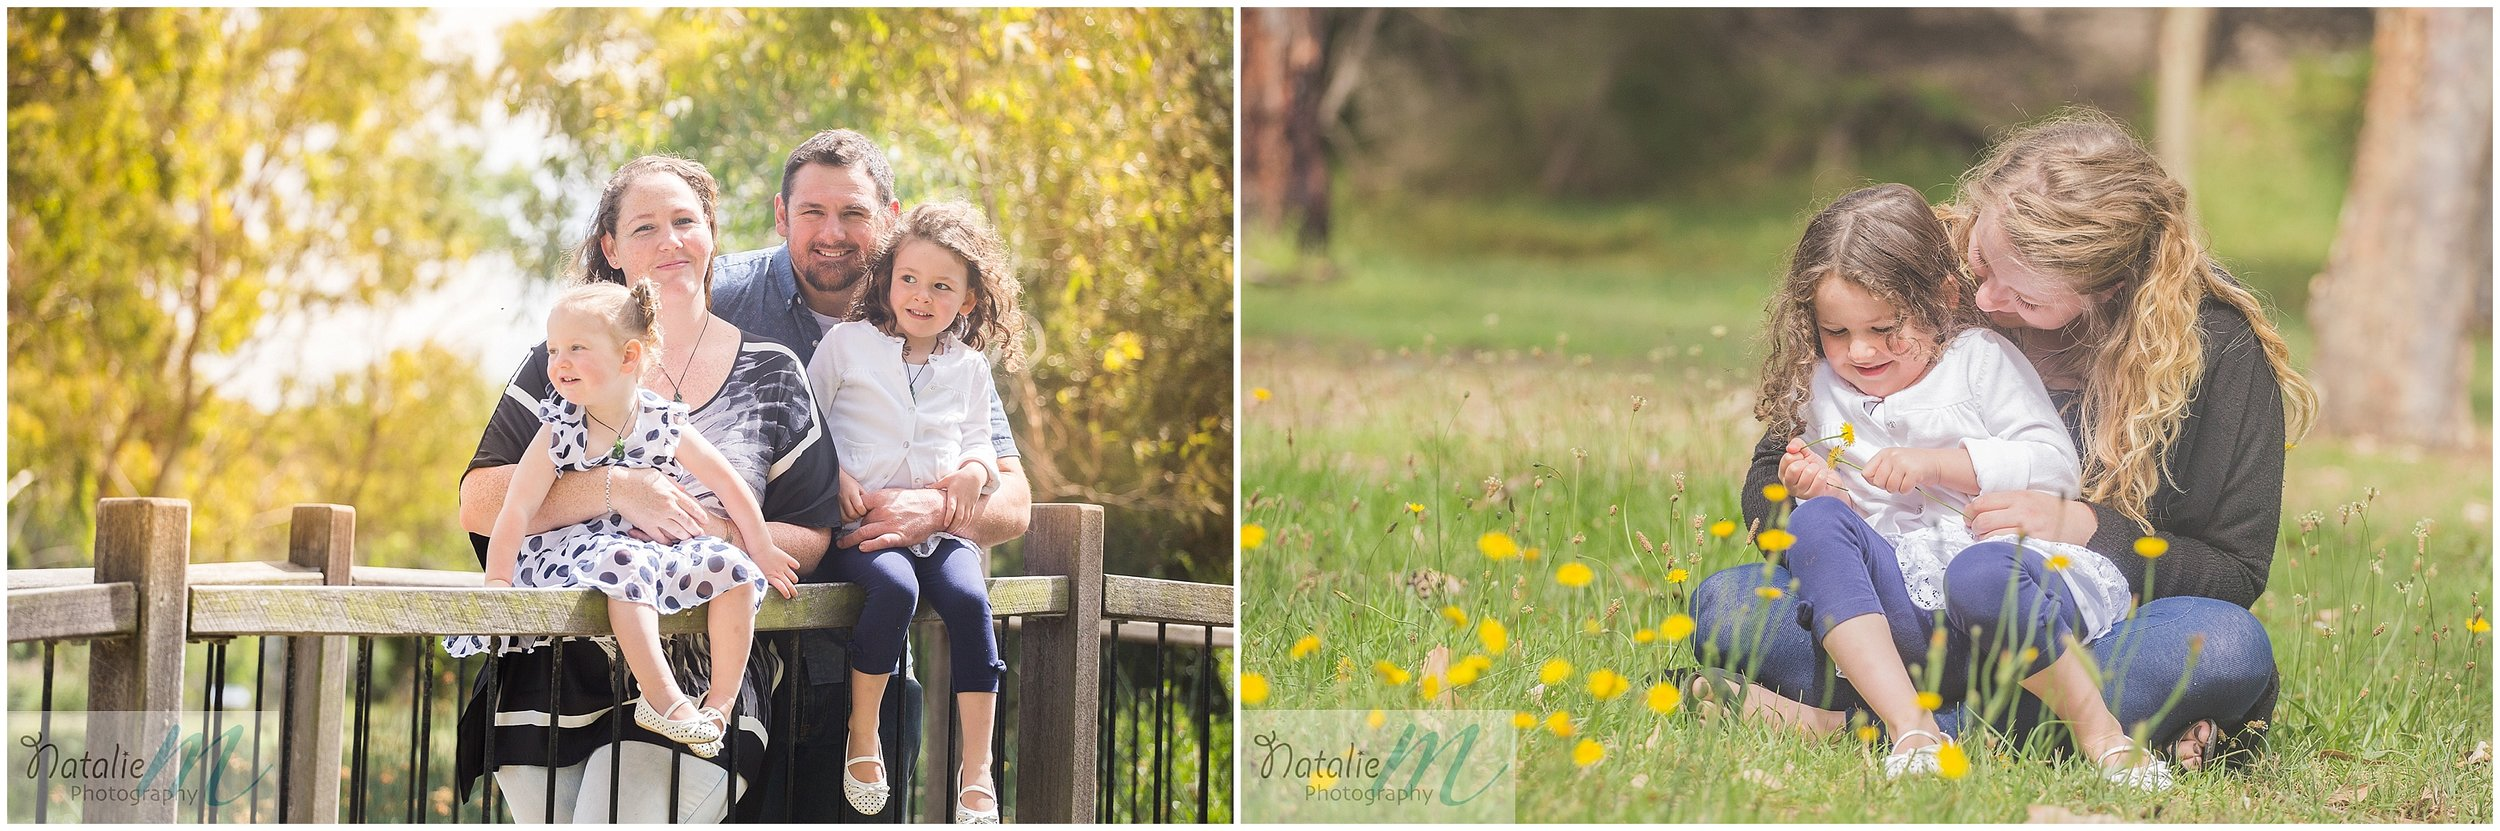 Family Photography Geelong_0050